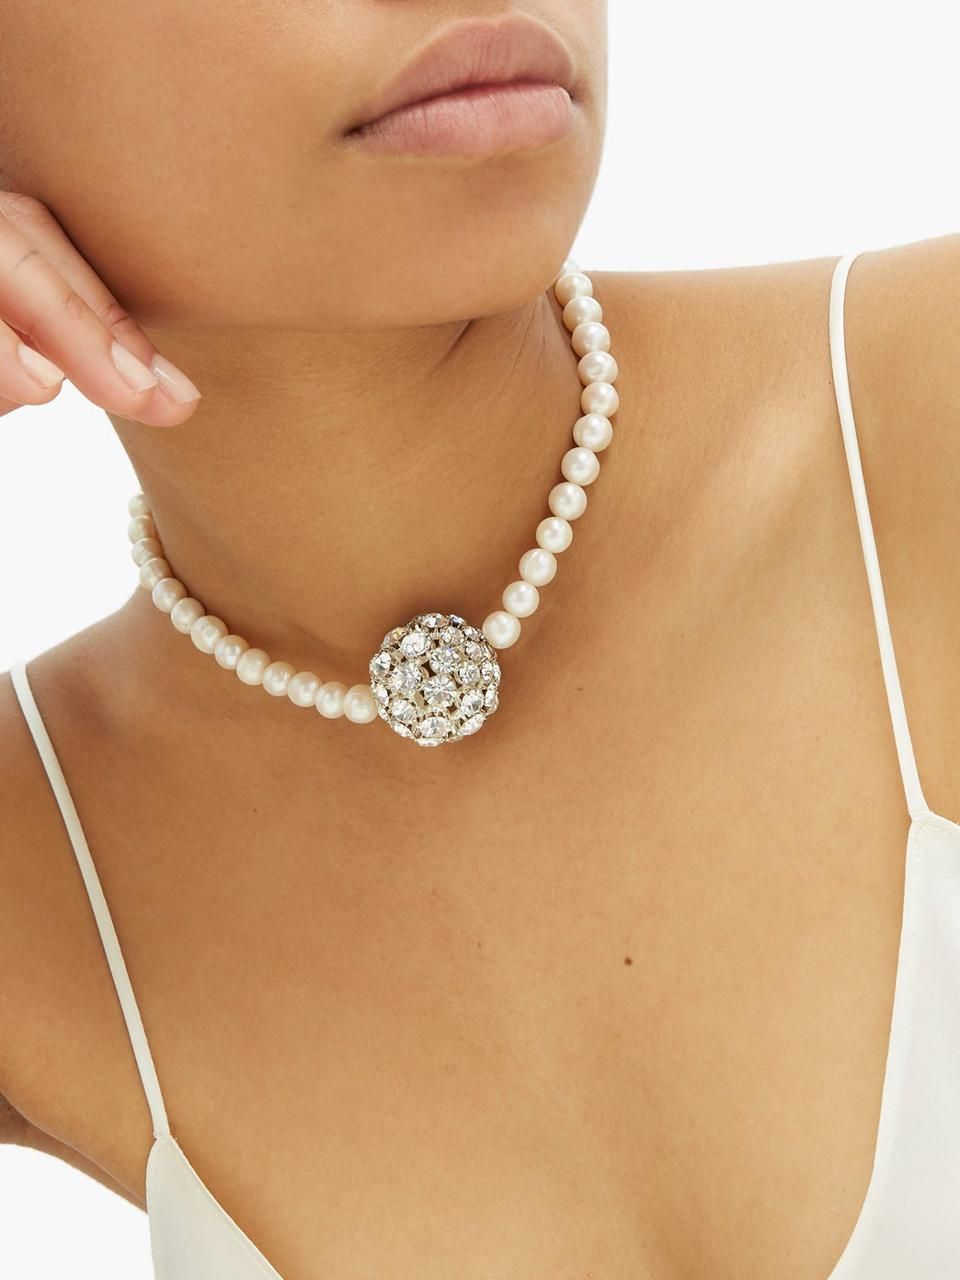 Crystal & Freshwater-Pearl Necklace by Timeless Pearly: